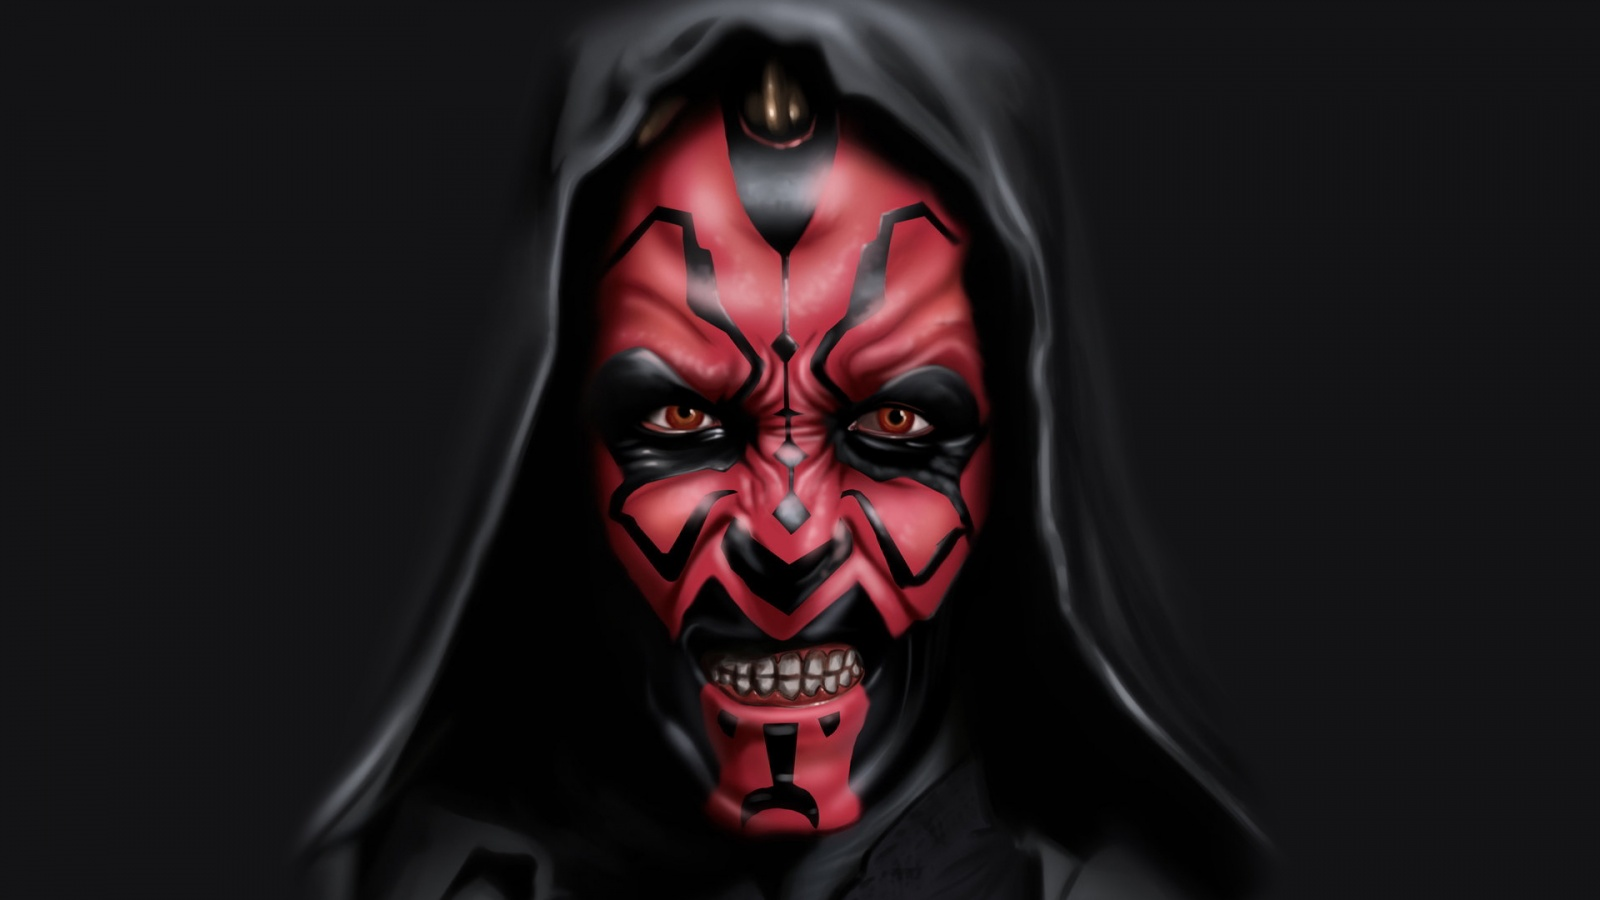 Description: The Wallpaper above is Sith darth maul Wallpaper in Resolution 1600x900. Choose your Resolution and Download Sith darth maul Wallpaper